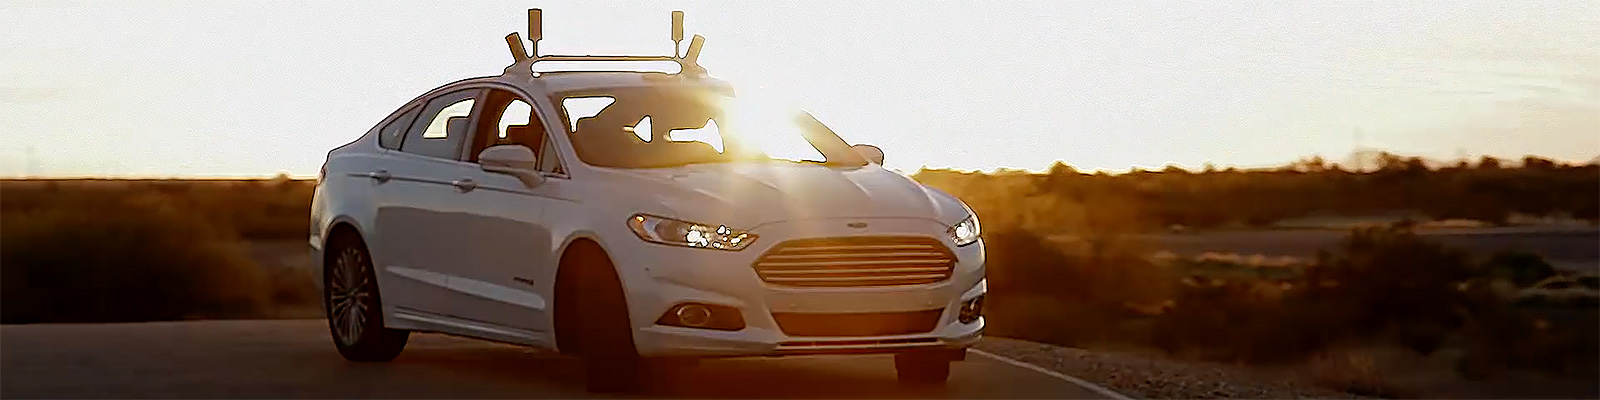 Project Nightonomy: Autonomous Vehicle Testing in the Dark | Ford Fusion | Ford(Ford)